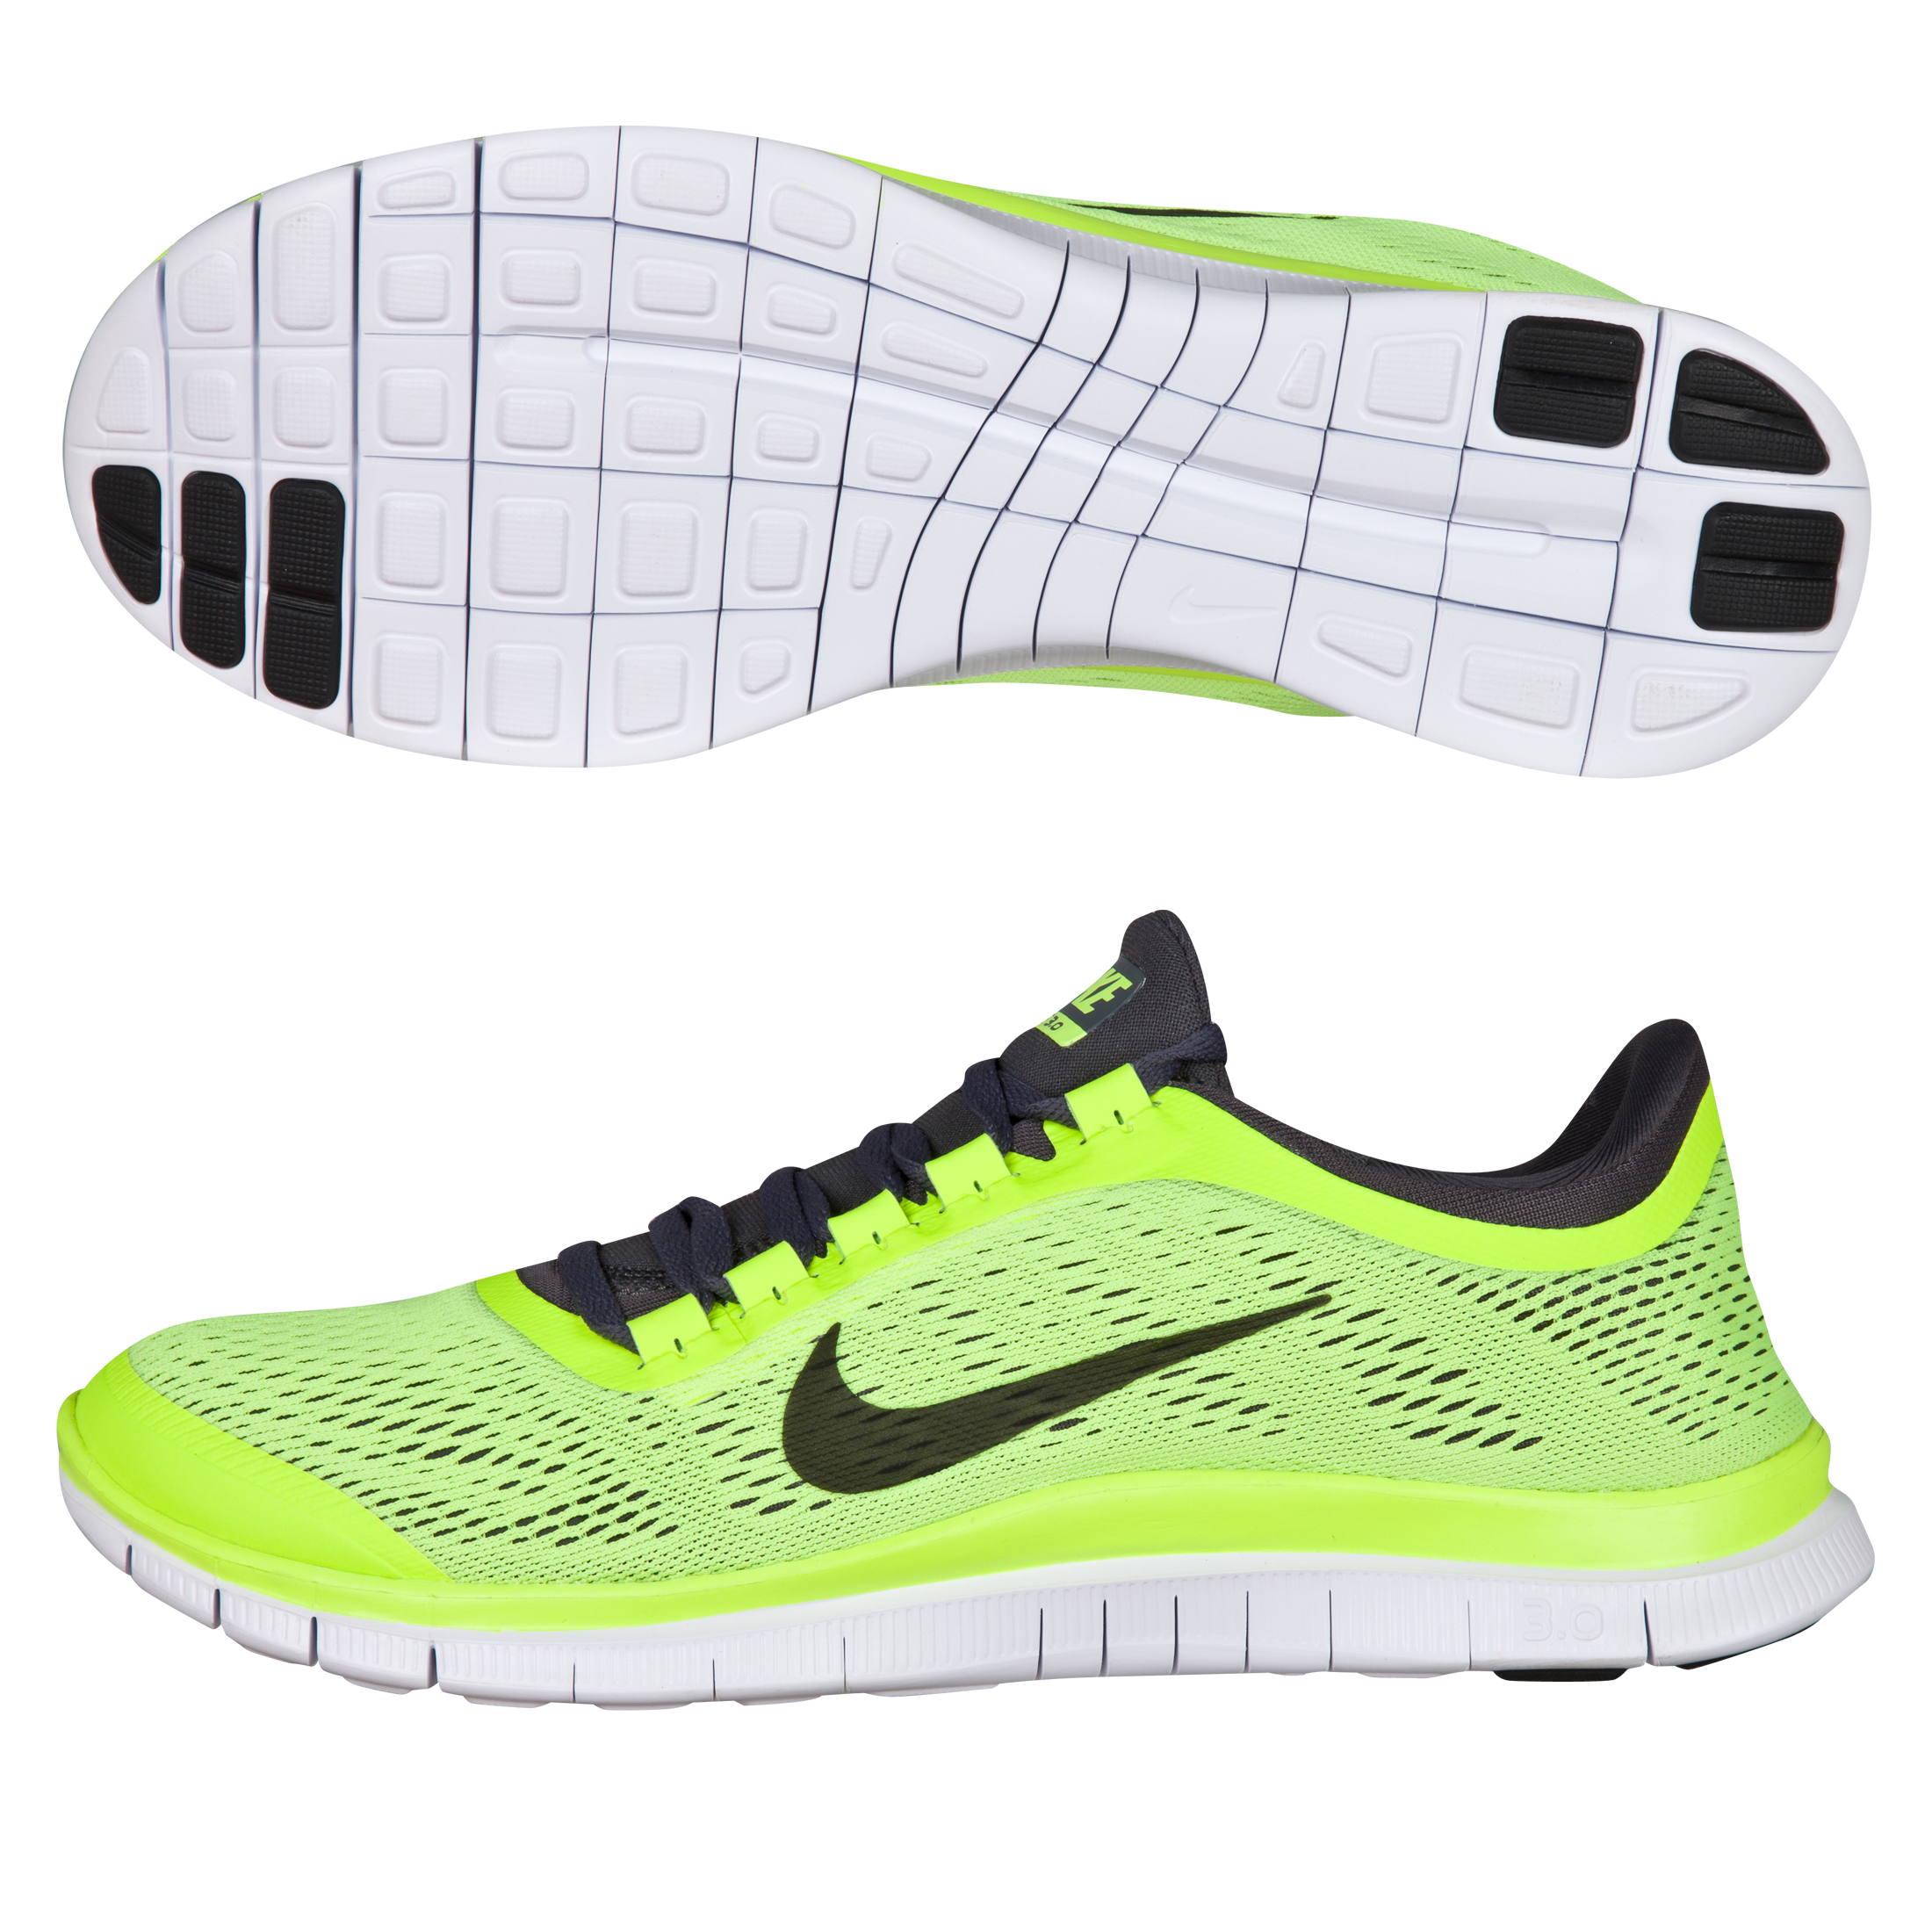 Nike Free 3.0 V5 Trainer - Volt/Dark Grey/White